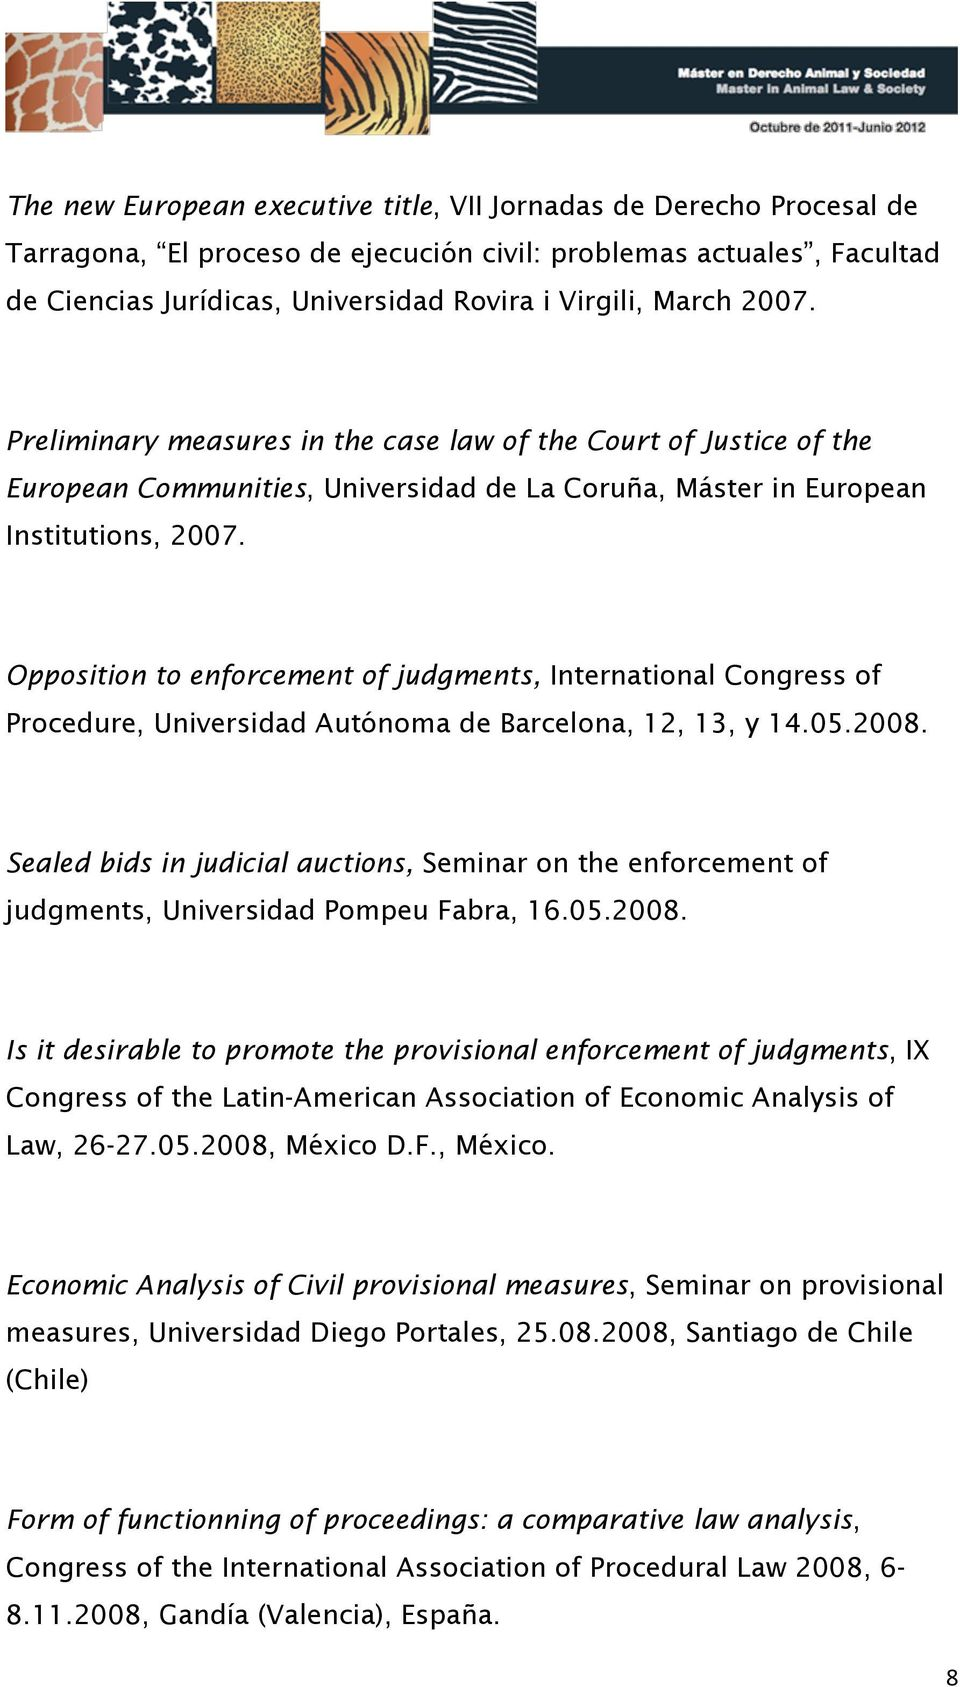 Opposition to enforcement of judgments, International Congress of Procedure, Universidad Autónoma de Barcelona, 12, 13, y 14.05.2008.